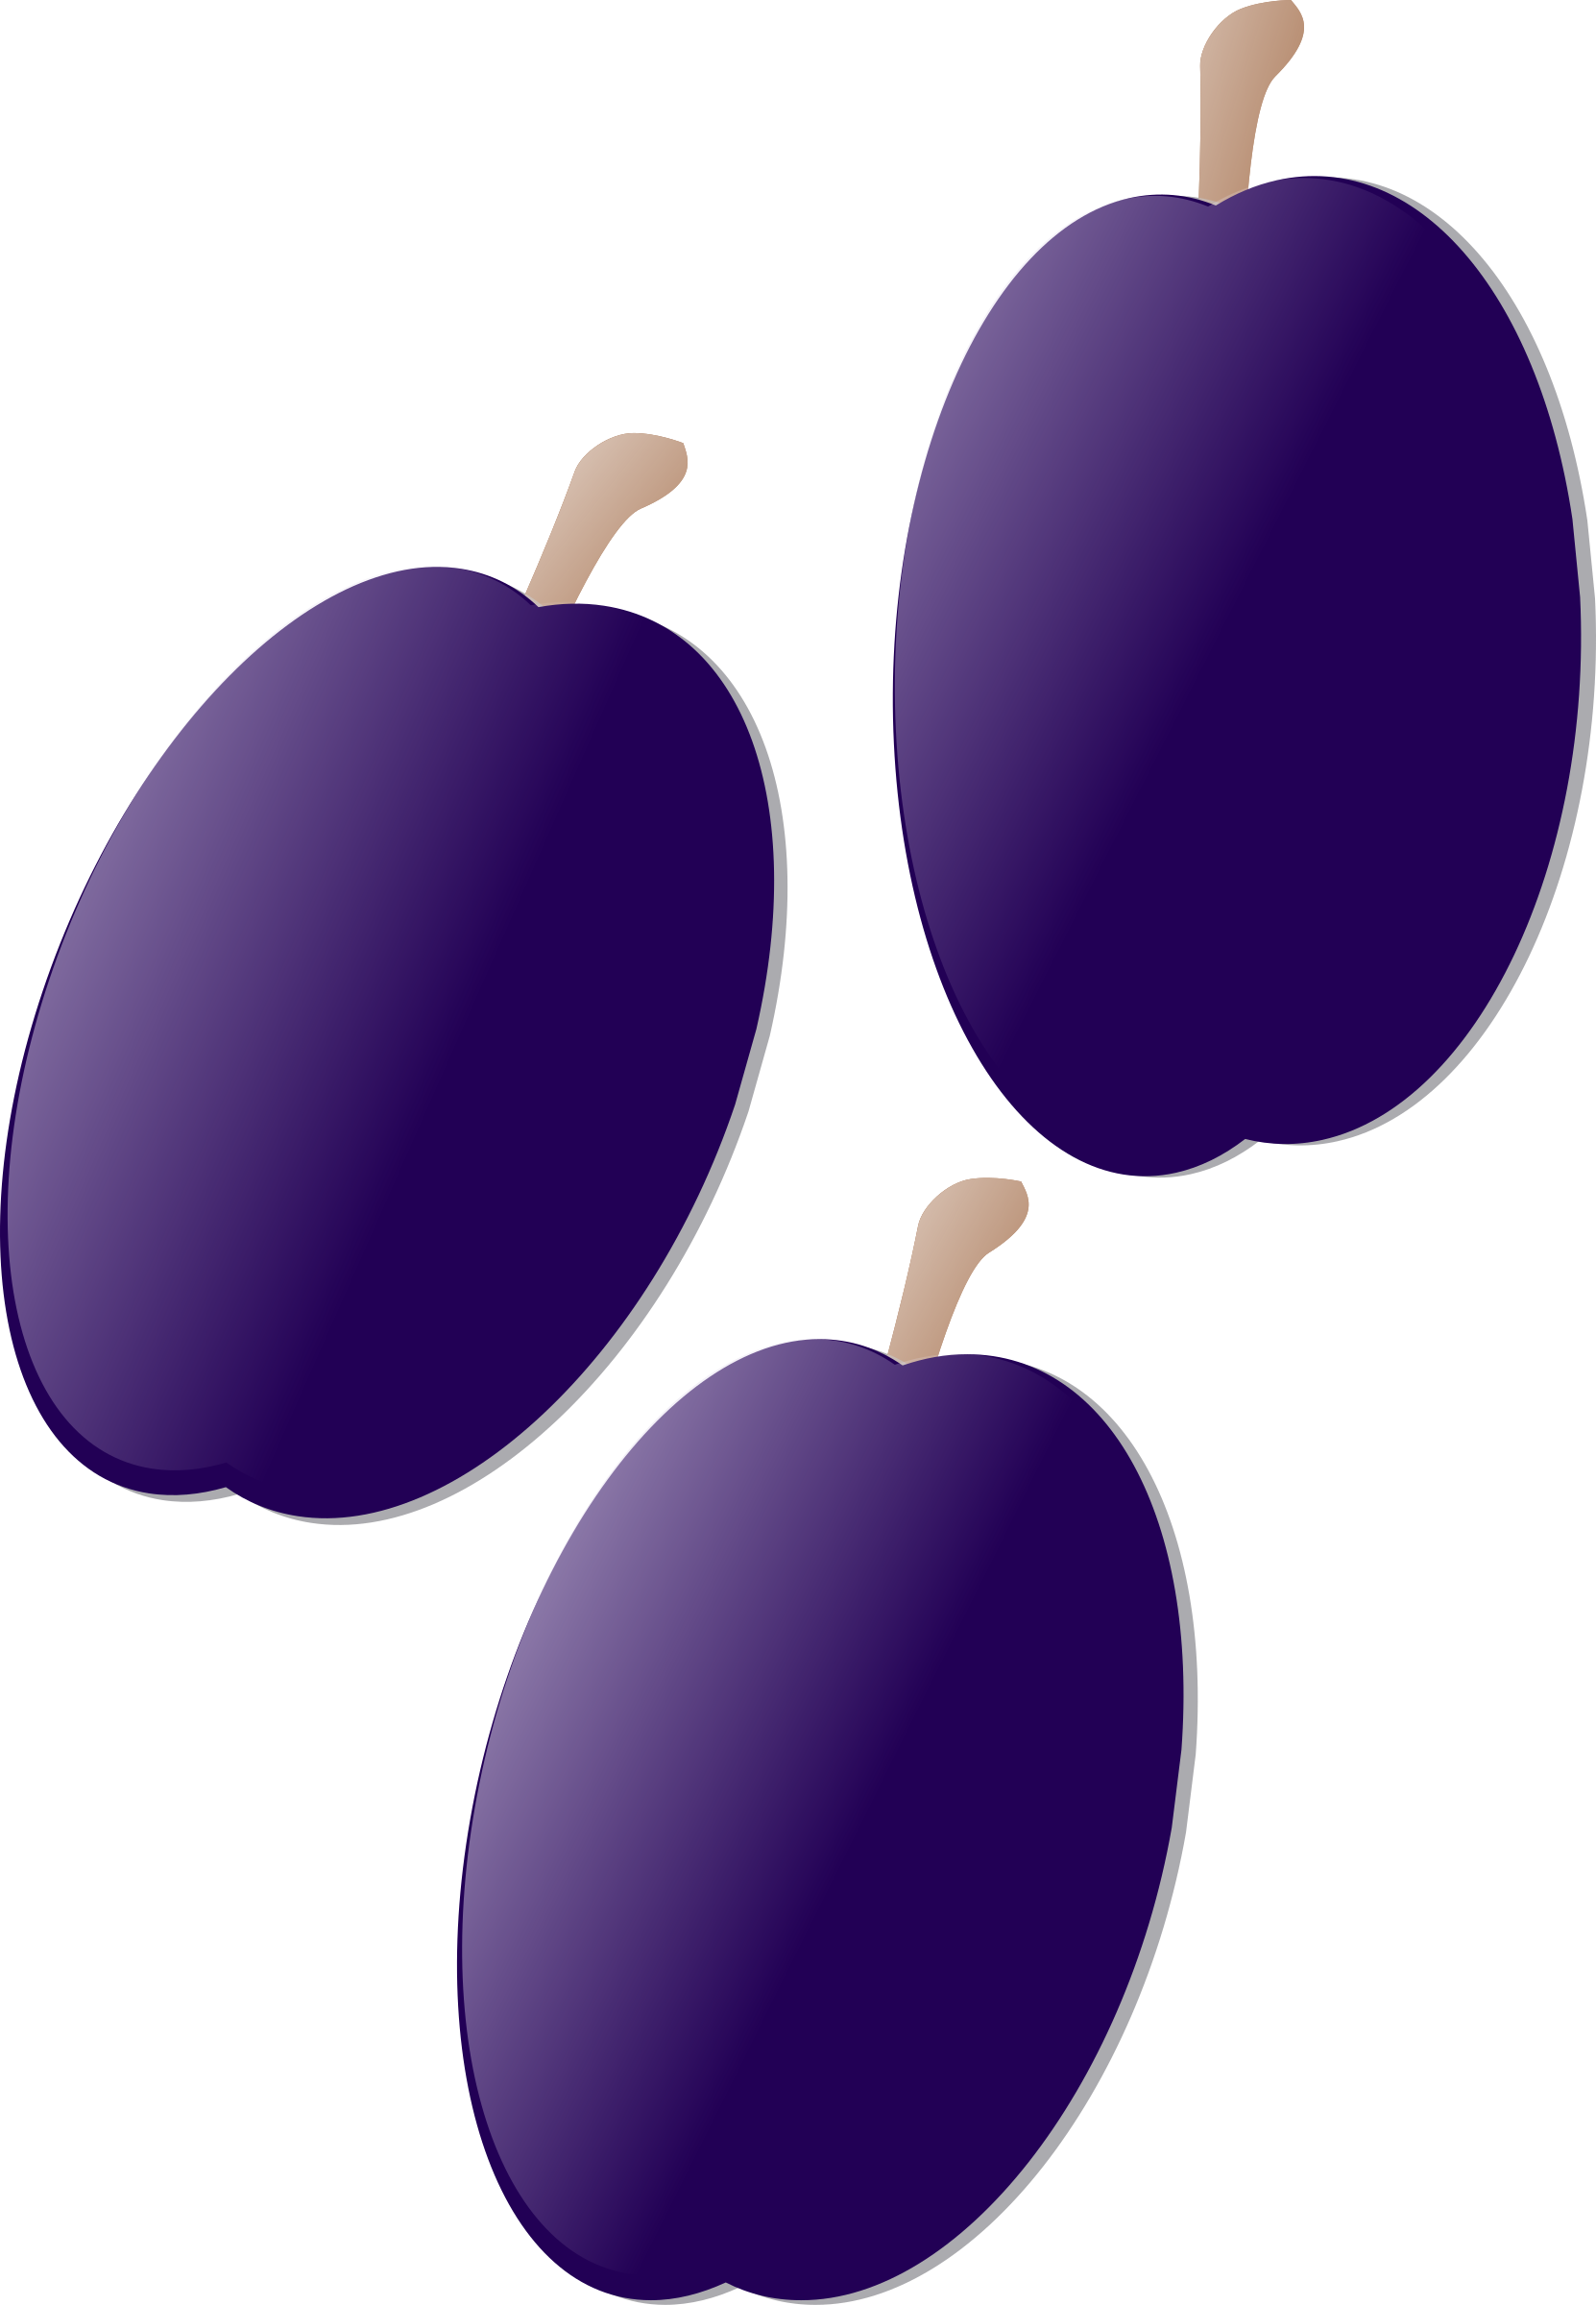 Plums big image png. Plum clipart violet vector free stock